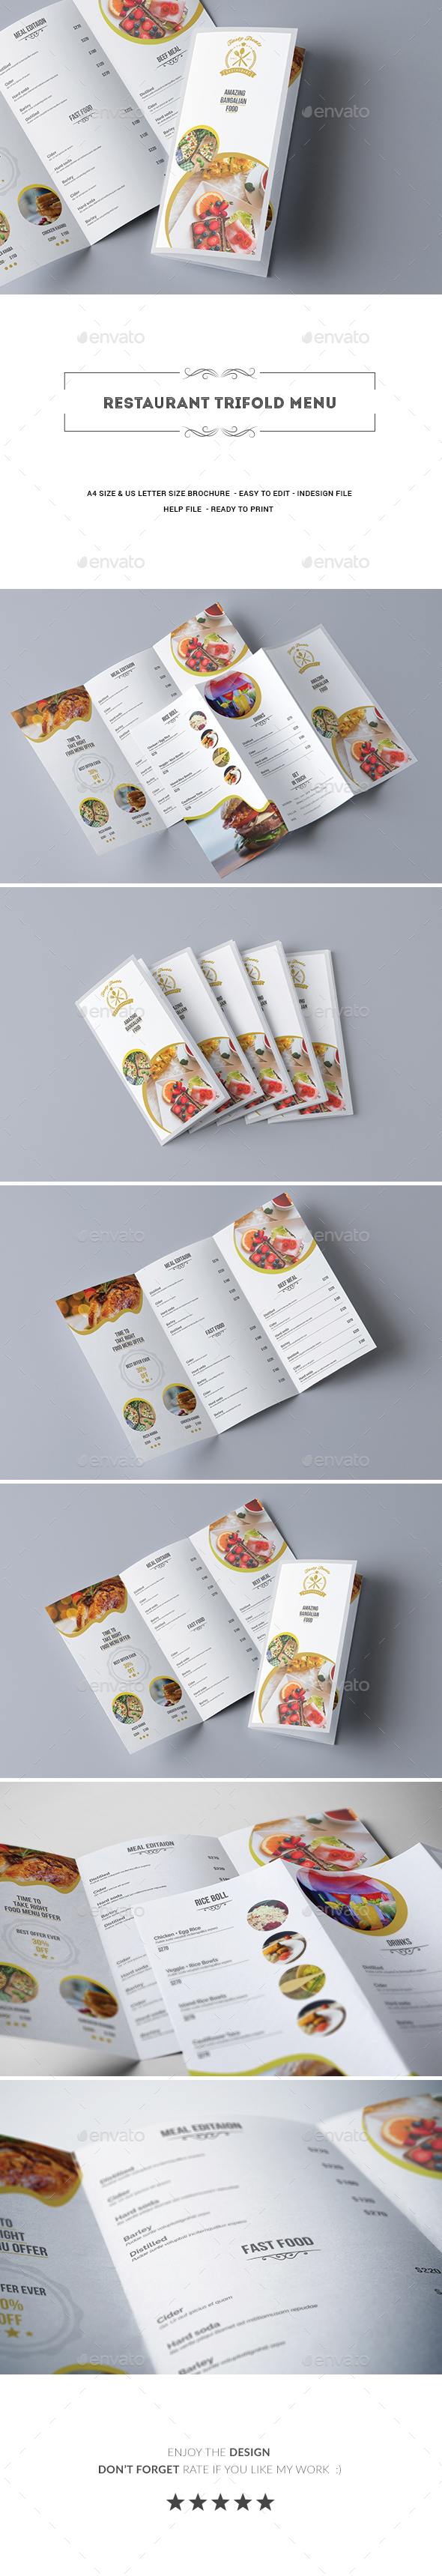 Restaurant Trifold Menu - Food Menus Print Templates